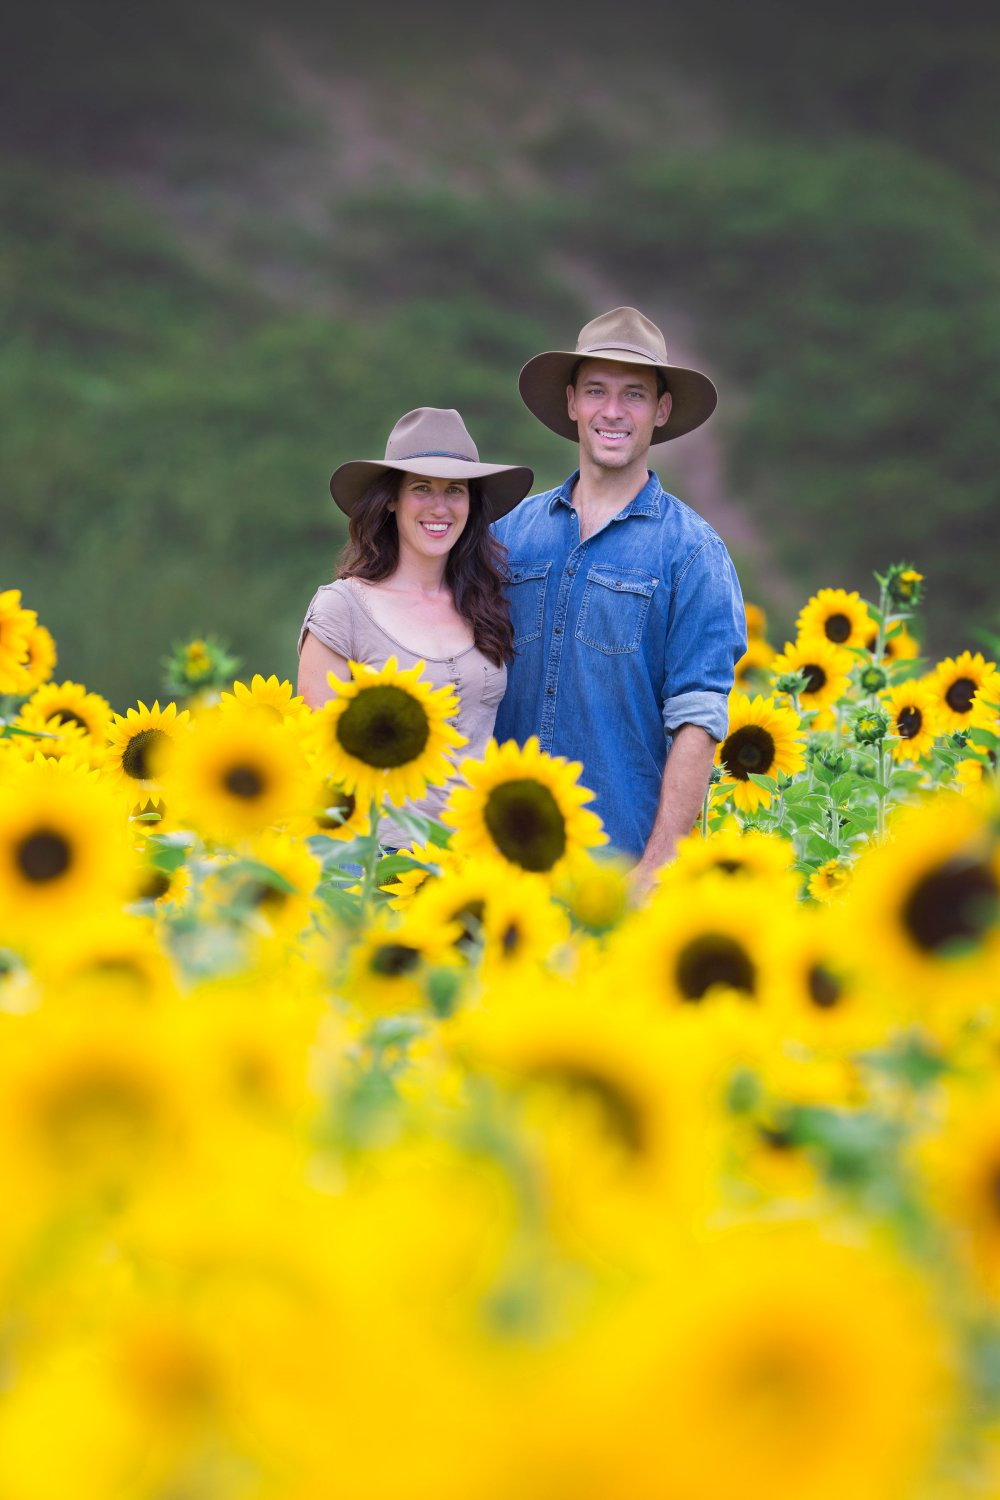 Couple in a sunflower field